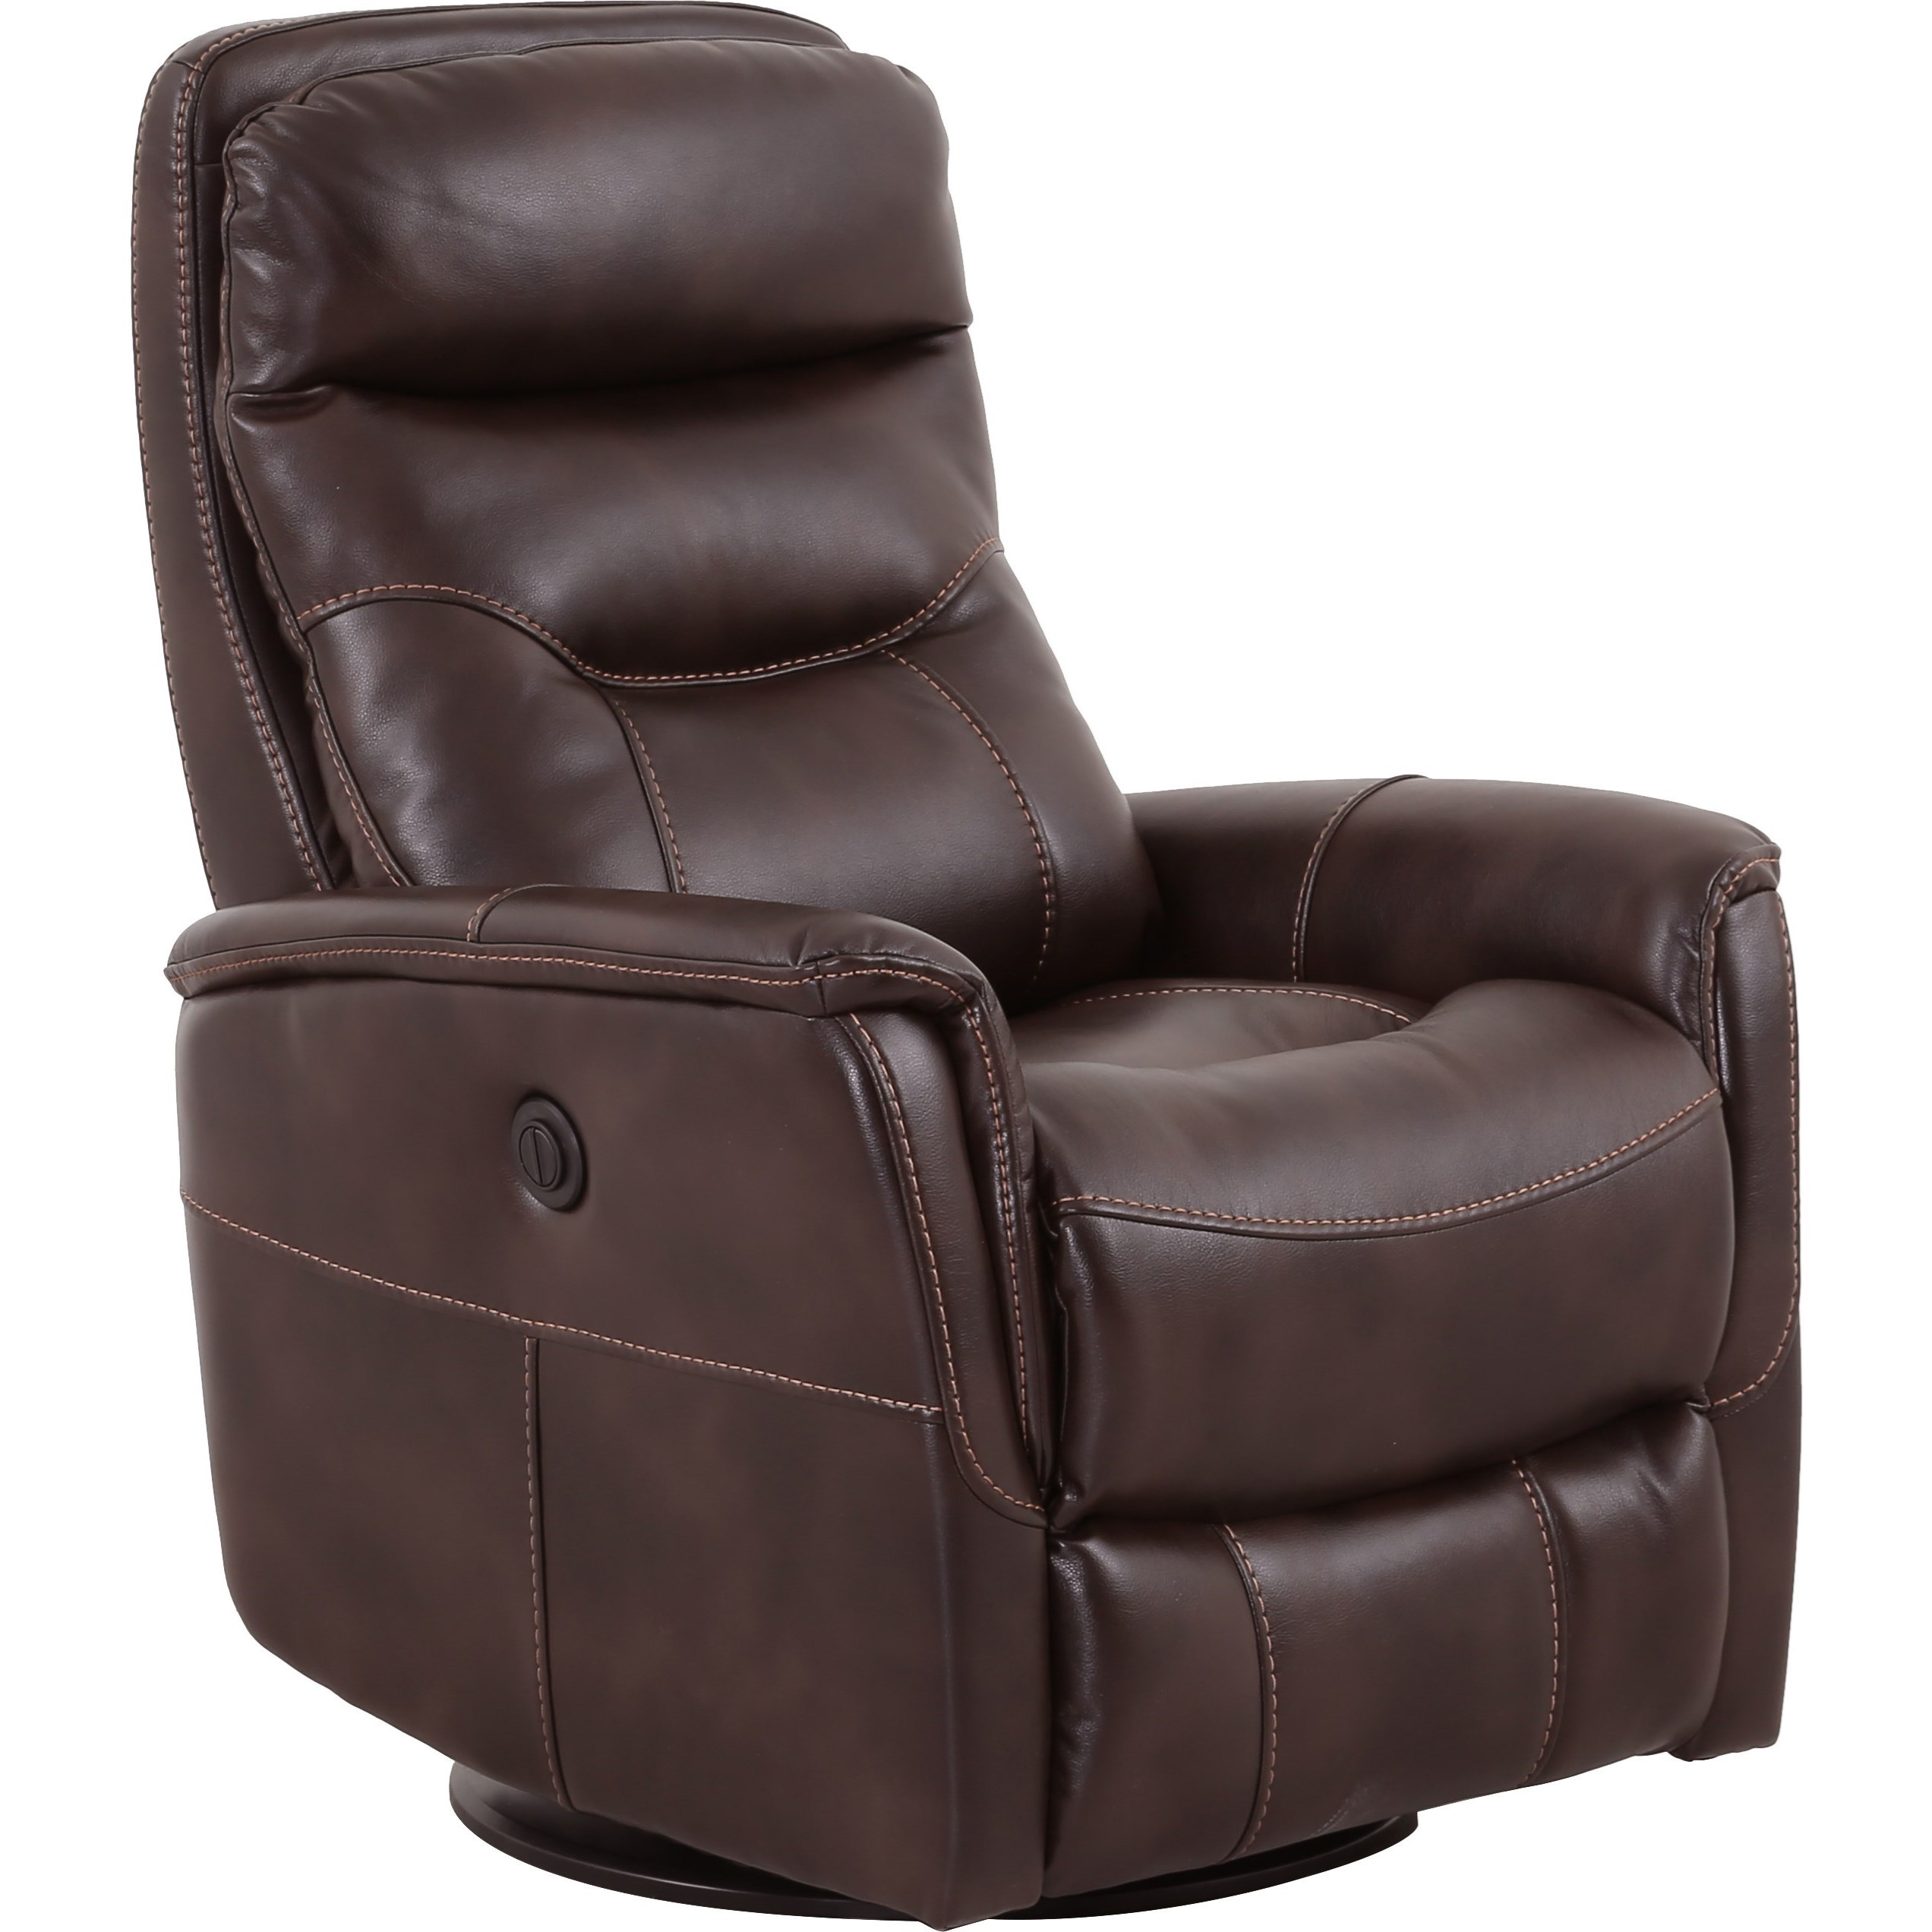 best chairs swivel glider recliner the chair fic parker living gemini contemporary power